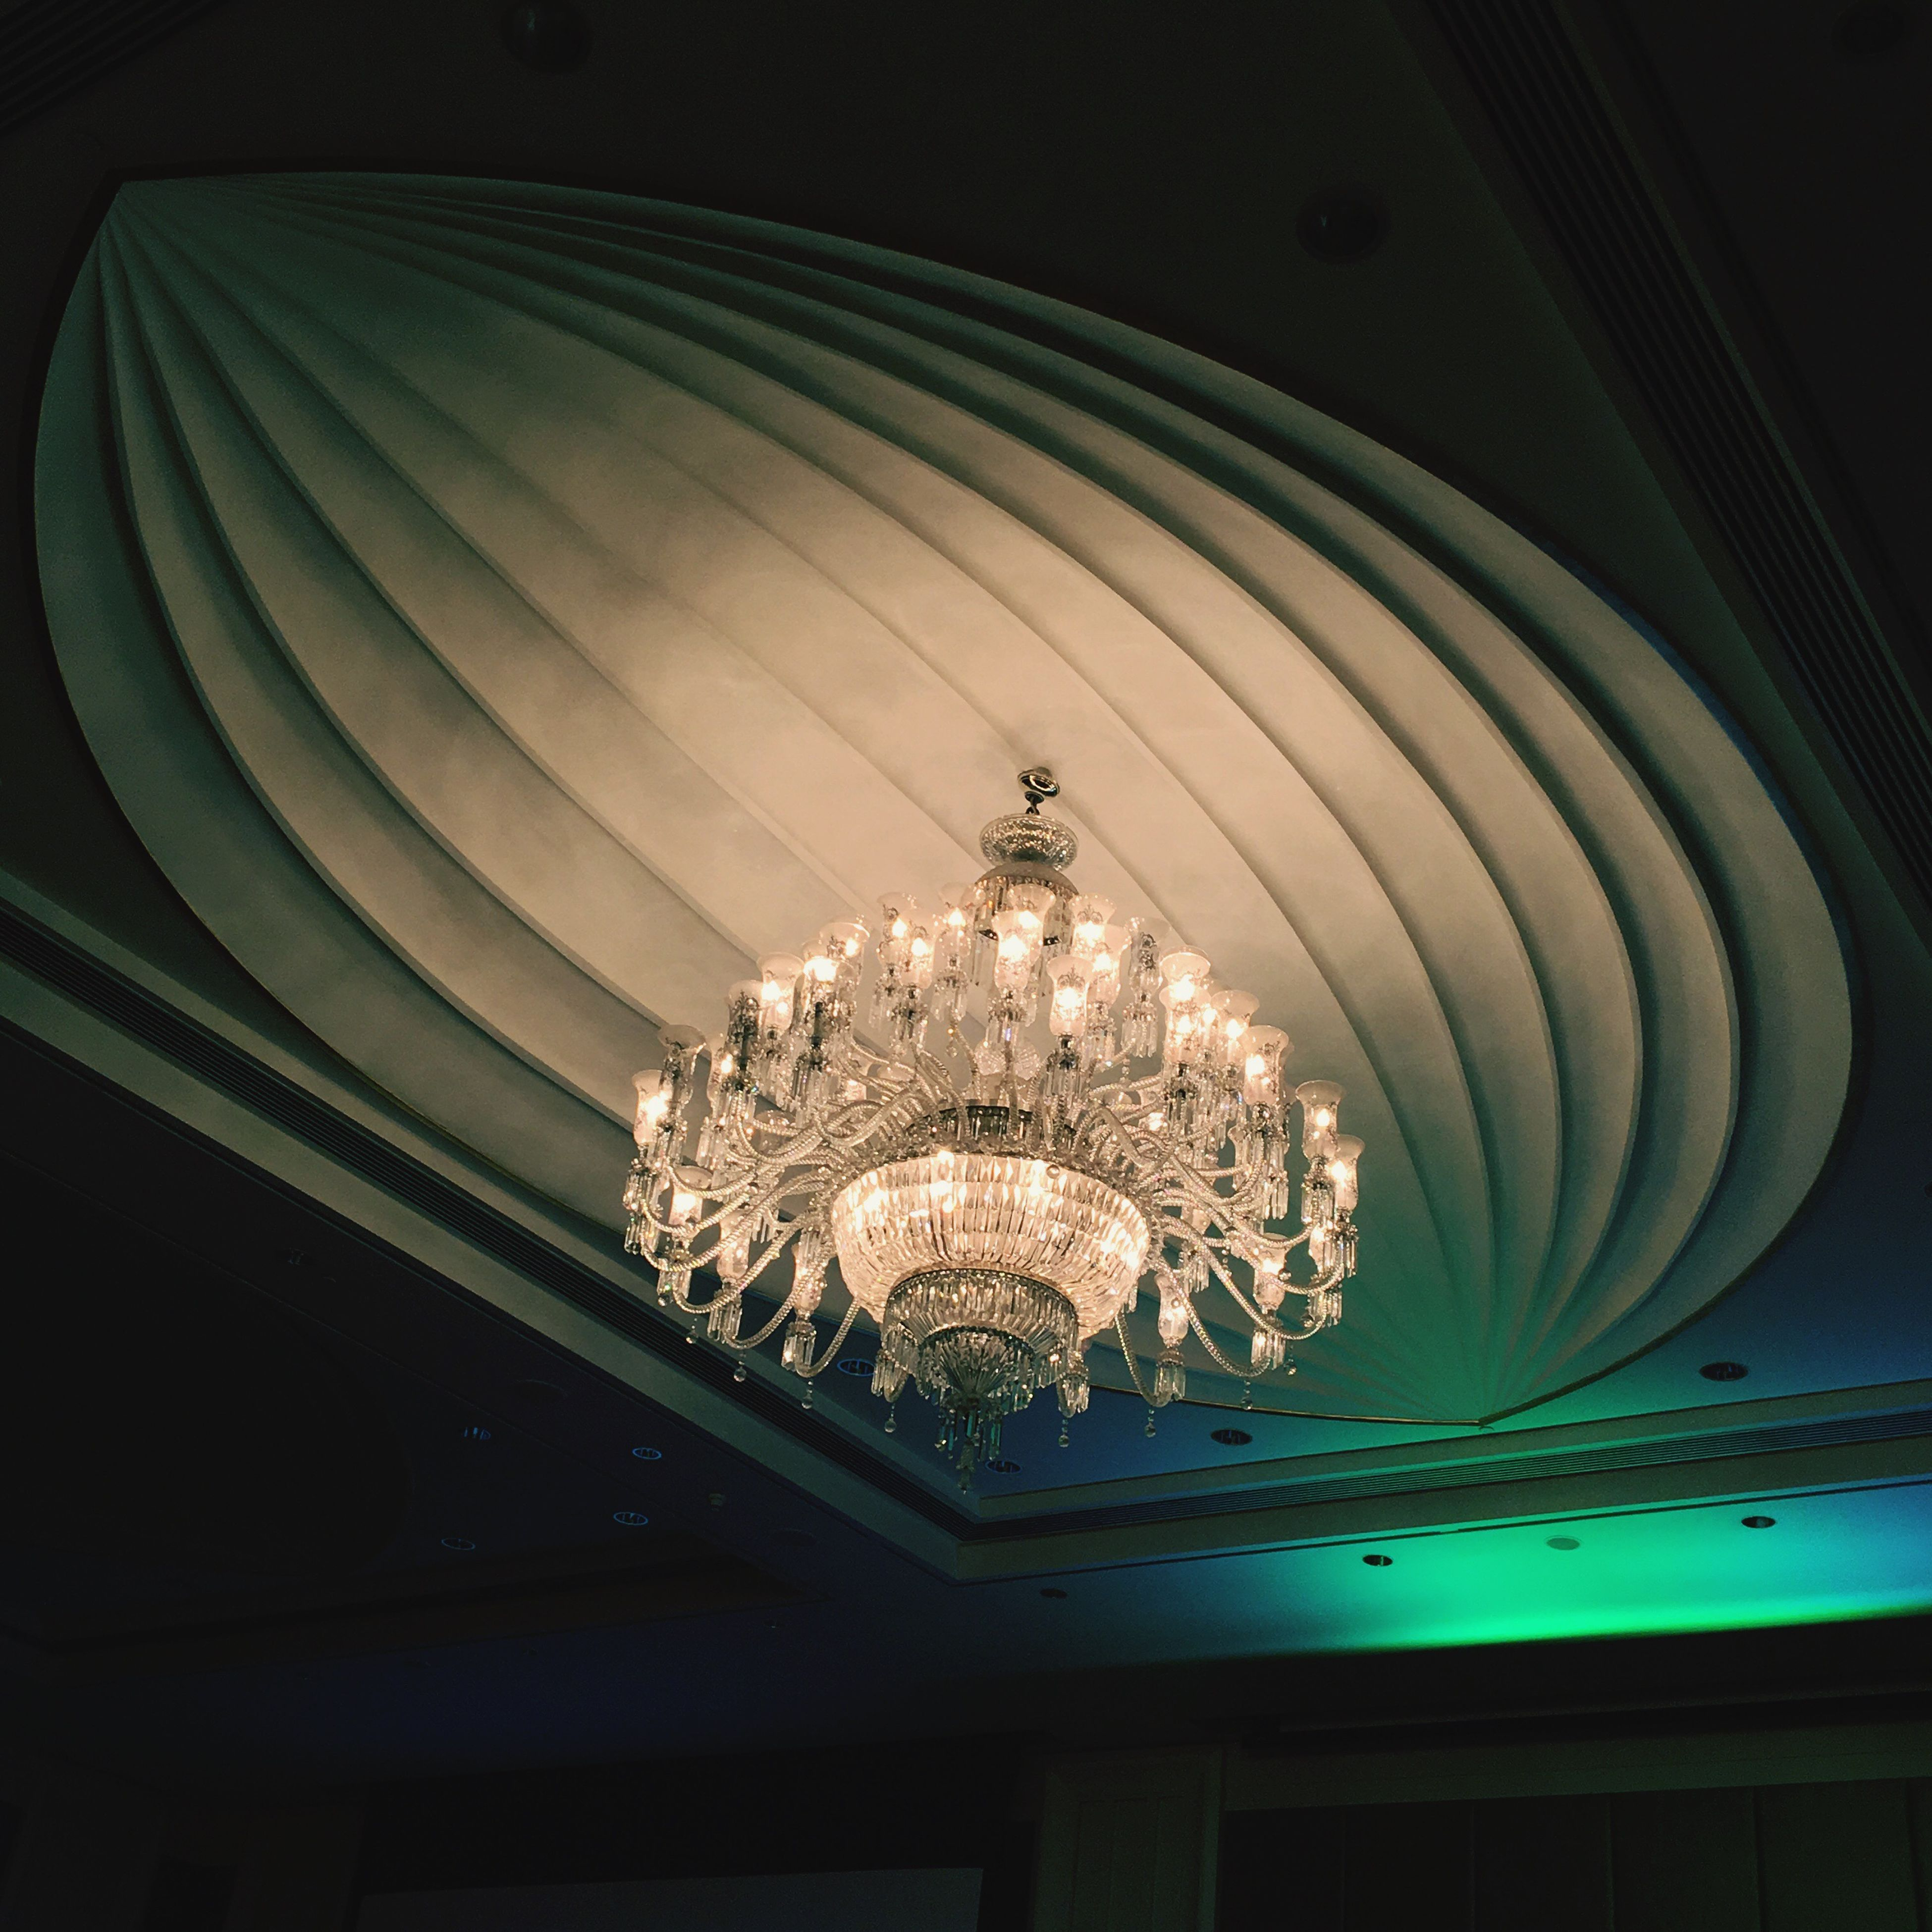 hanging, ceiling, low angle view, lighting equipment, illuminated, indoors, luxury, chandelier, elegance, glowing, close-up, electric light, decor, decoration, hanging light, green color, lit, modern, geometric shape, day, bright, multi colored